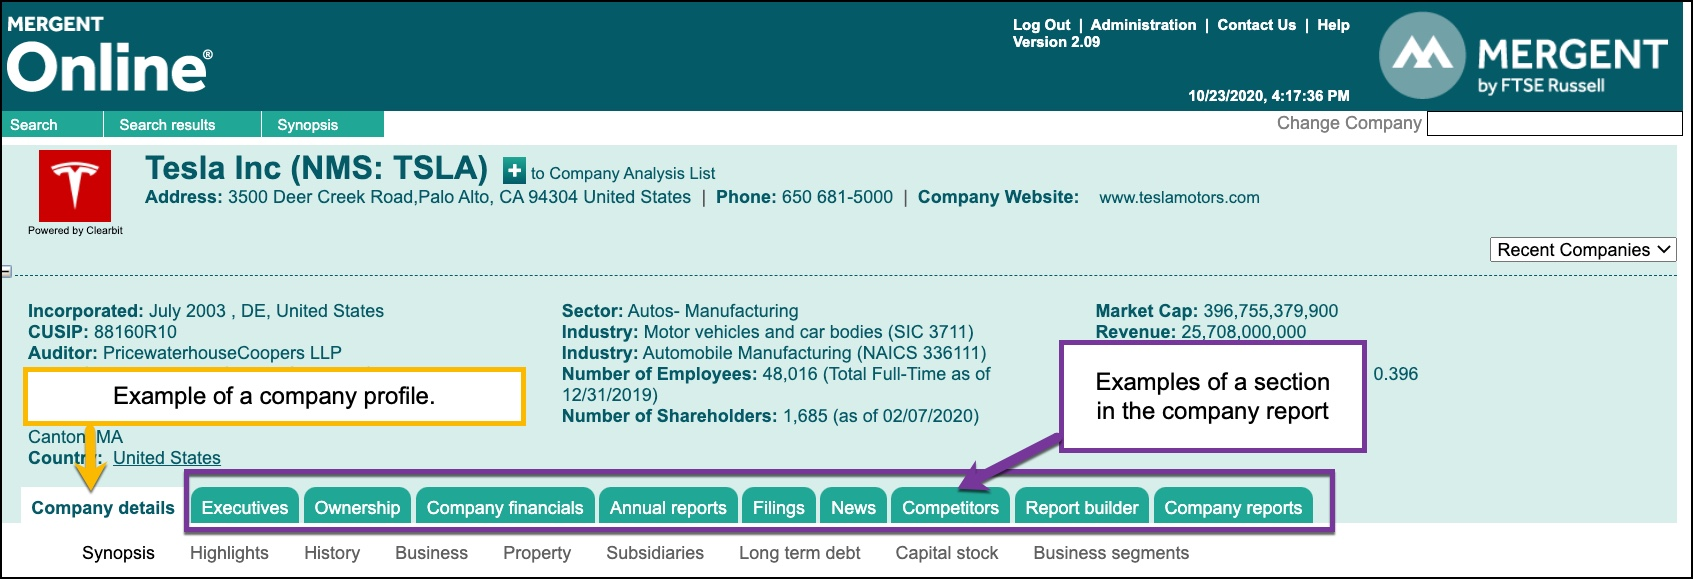 Screenshot of top level menu to a company report from Mergent Online